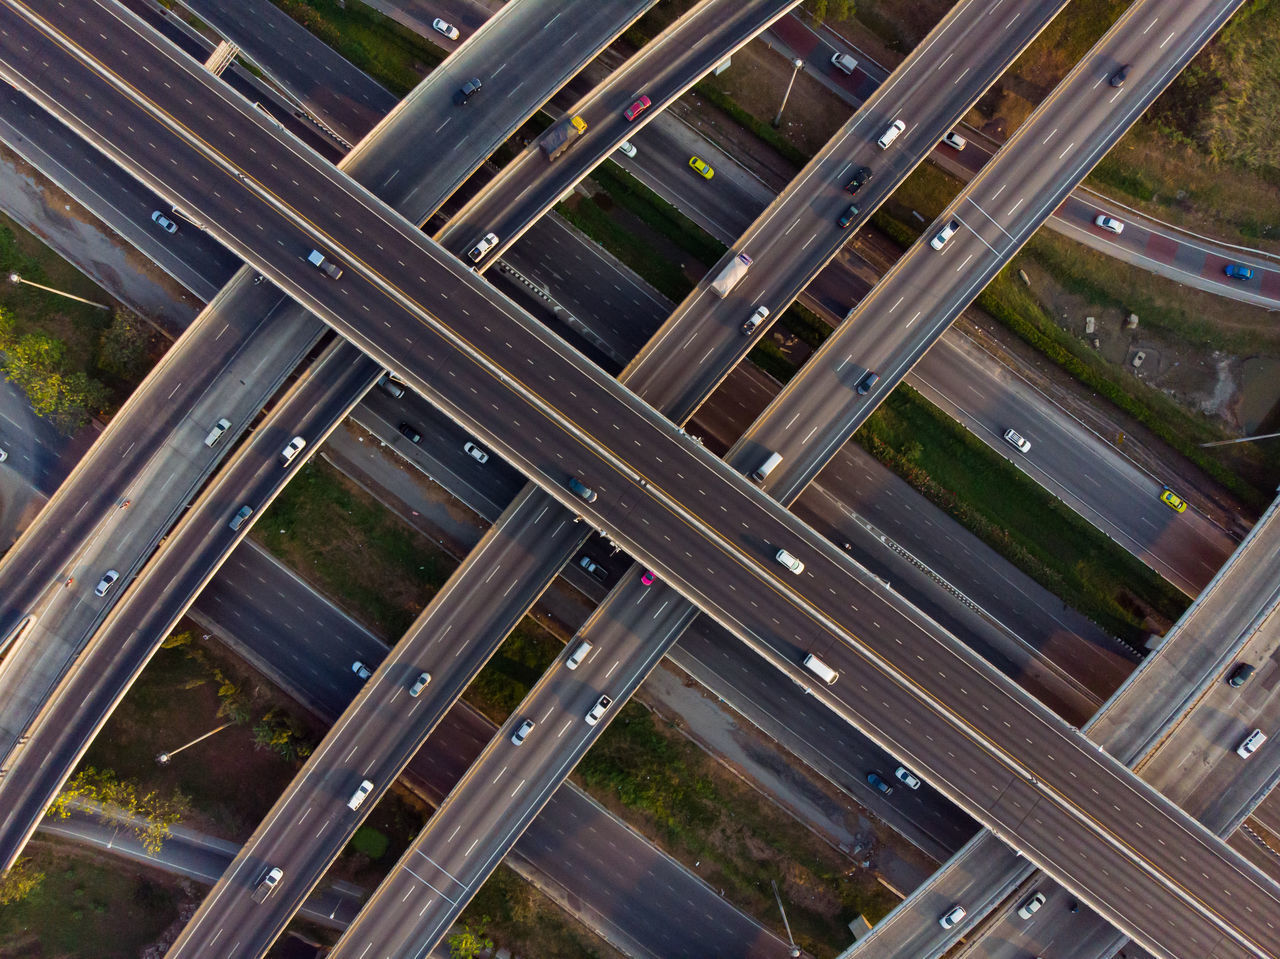 no people, high angle view, architecture, transportation, day, road, outdoors, built structure, glass - material, pattern, full frame, city, connection, street, transparent, land vehicle, nature, metal, mode of transportation, building exterior, multiple lane highway